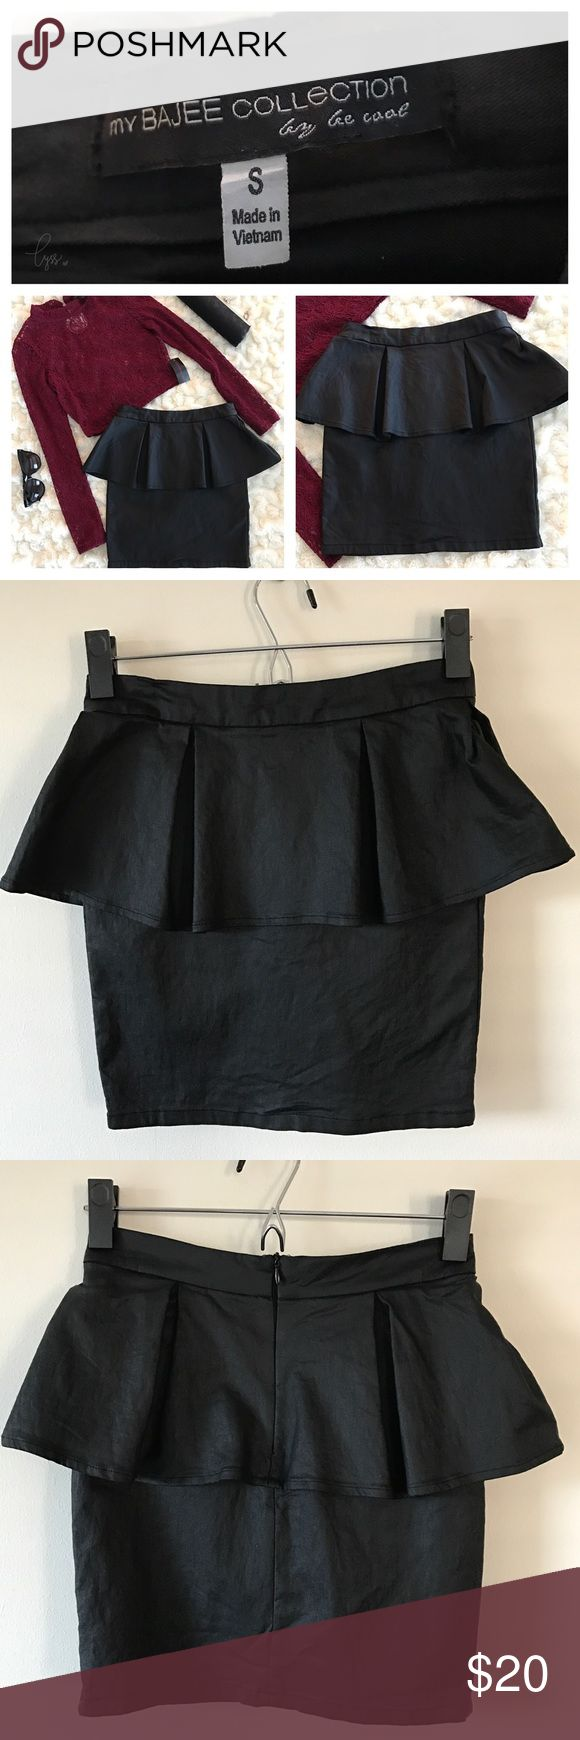 my BAJEE collection Black Peplum Skirt Gently used in good condition!  🖤 my BAJEE collection 🖤 Size Small 🖤 Black 🖤 Faux Leather 🖤 Peplum Skirt my BAJEE collection by be cool Skirts Mini